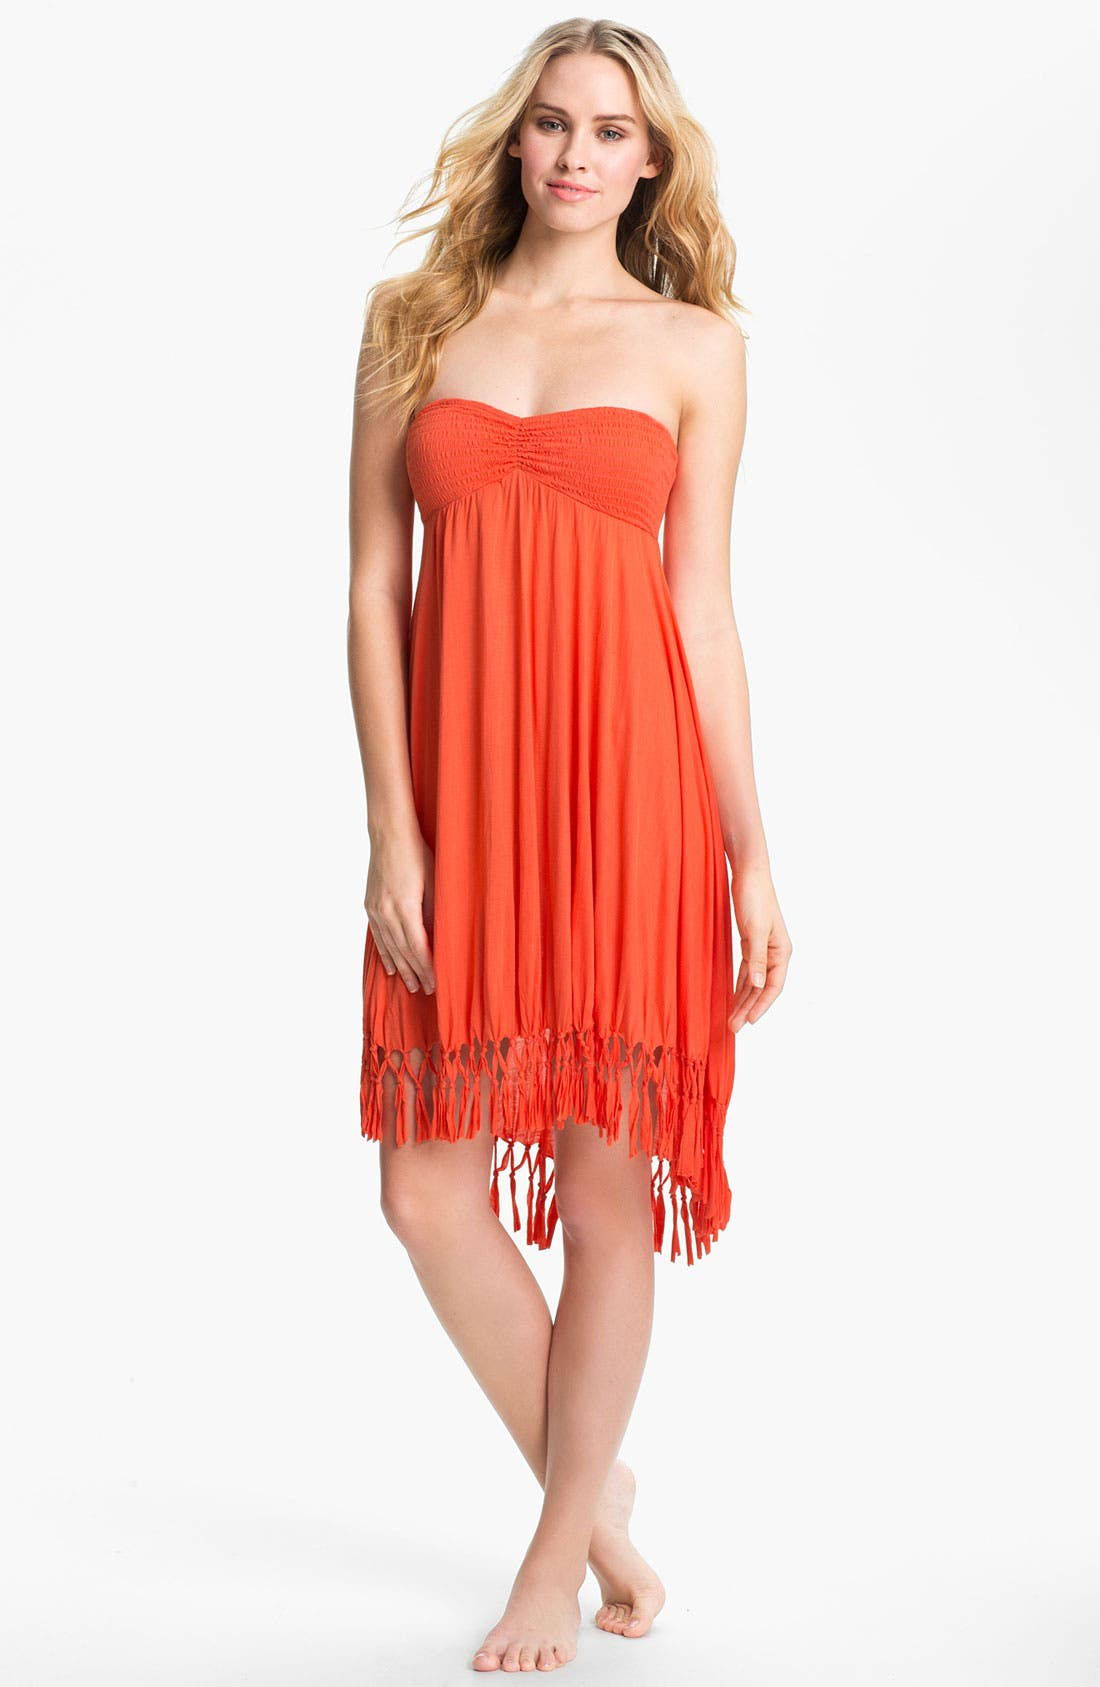 Alternate Image 1 Selected - Roxy 'Native Breeze' Cover-Up Dress